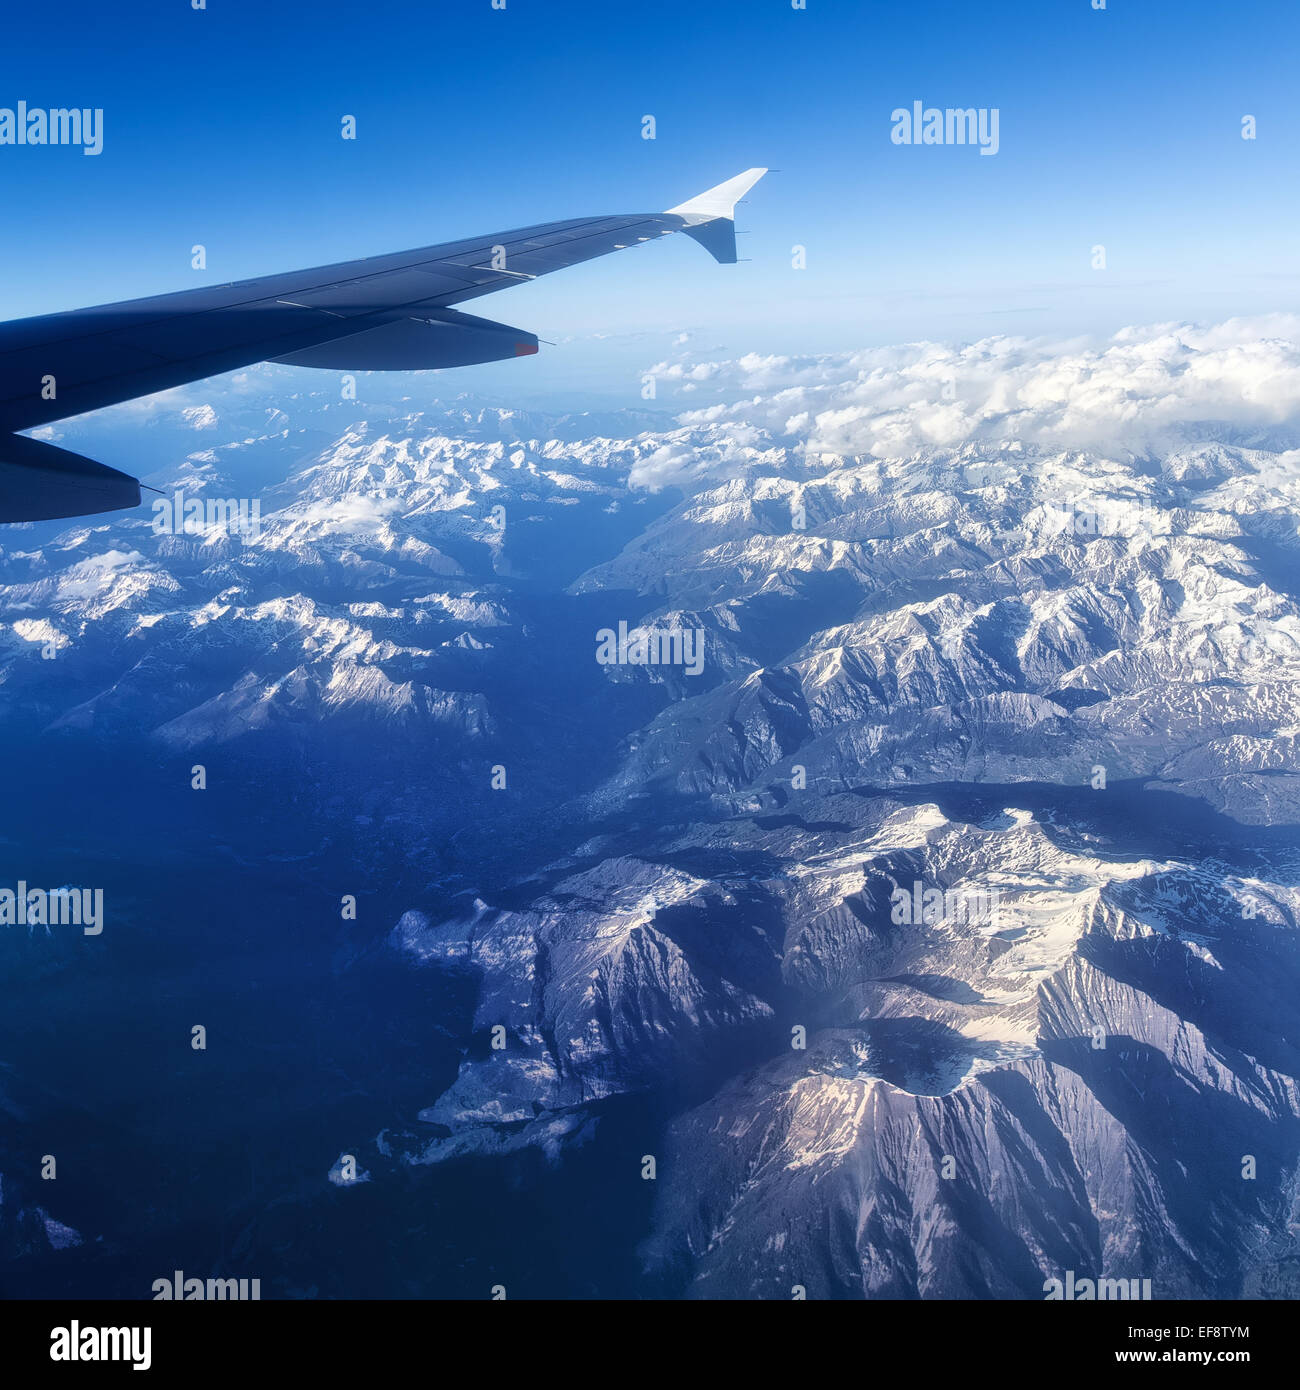 France, Alps, Aerial view of snowcapped mountain landscape and airplane wing - Stock Image